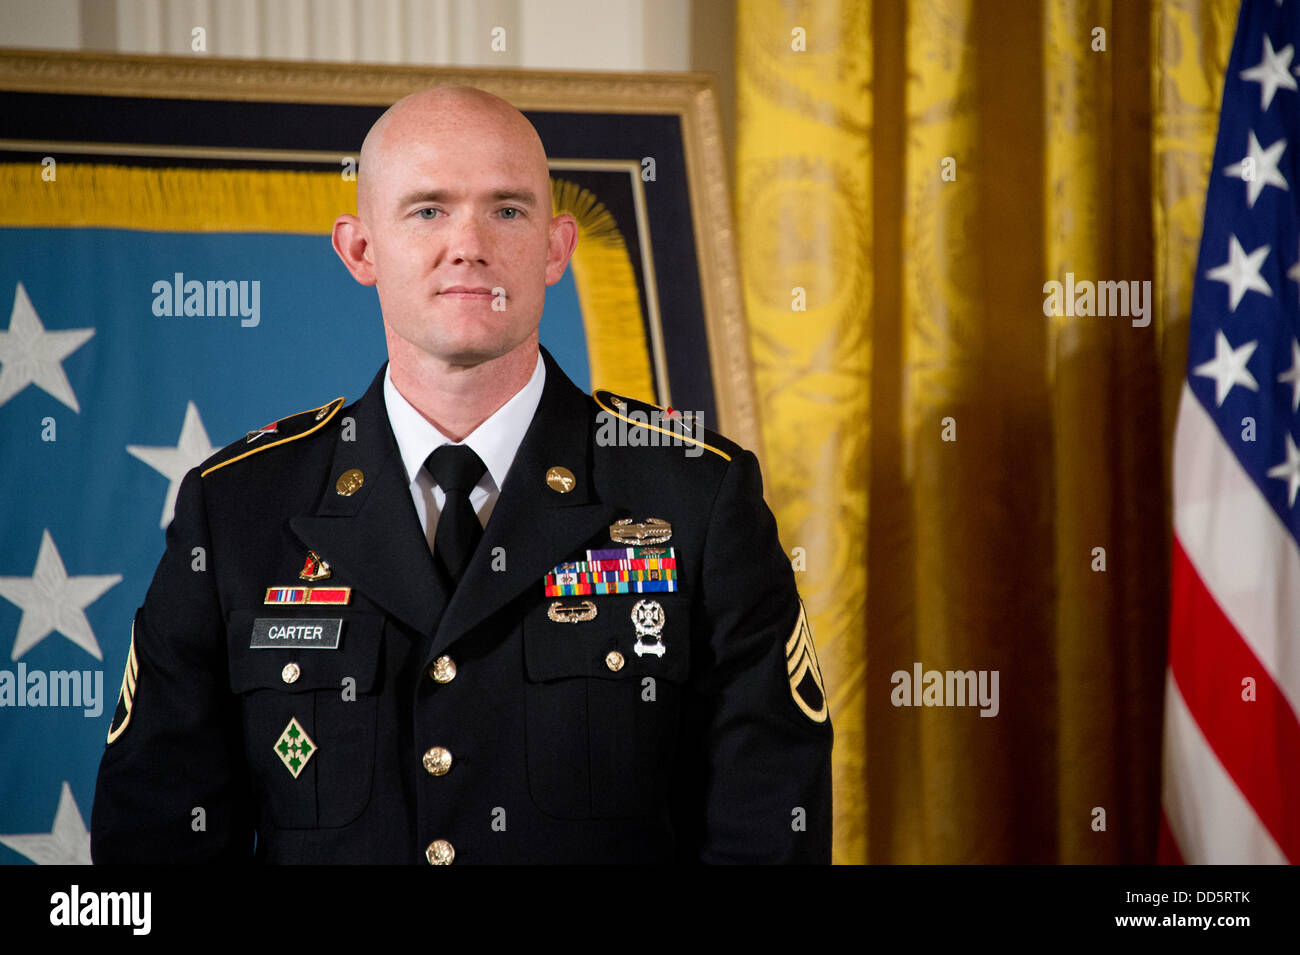 US Army Staff Sgt. Ty Michael Carter during his Medal of Honor ceremony in the East Room of the White House August - Stock Image